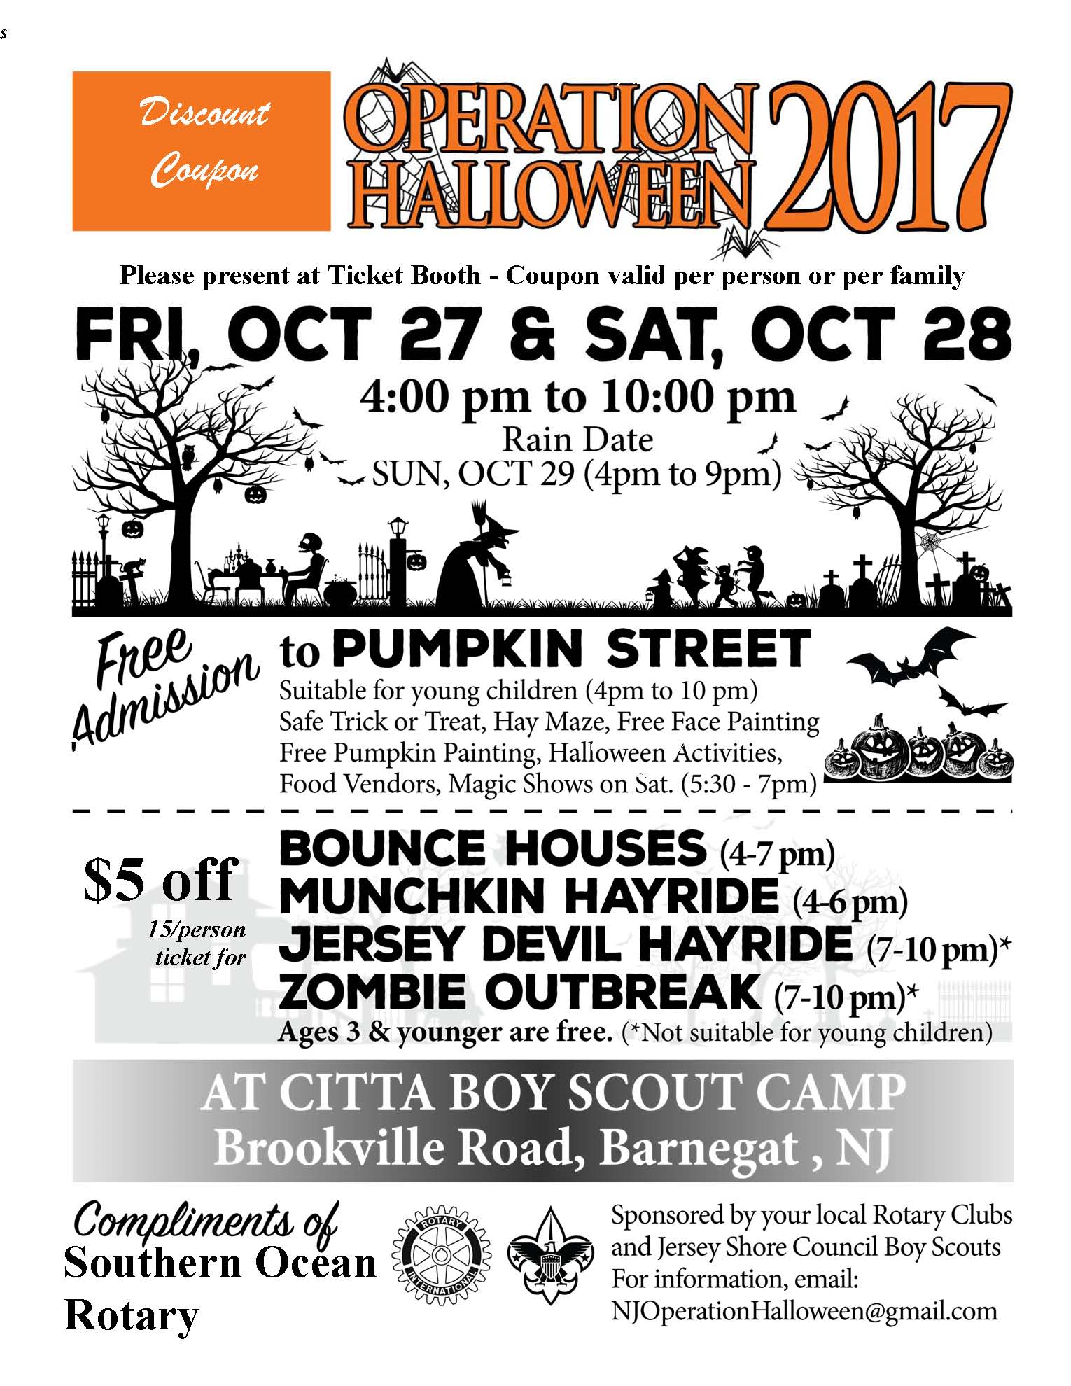 Operation Halloween 2017 | Rotary Club of Southern Ocean (Manahawkin)